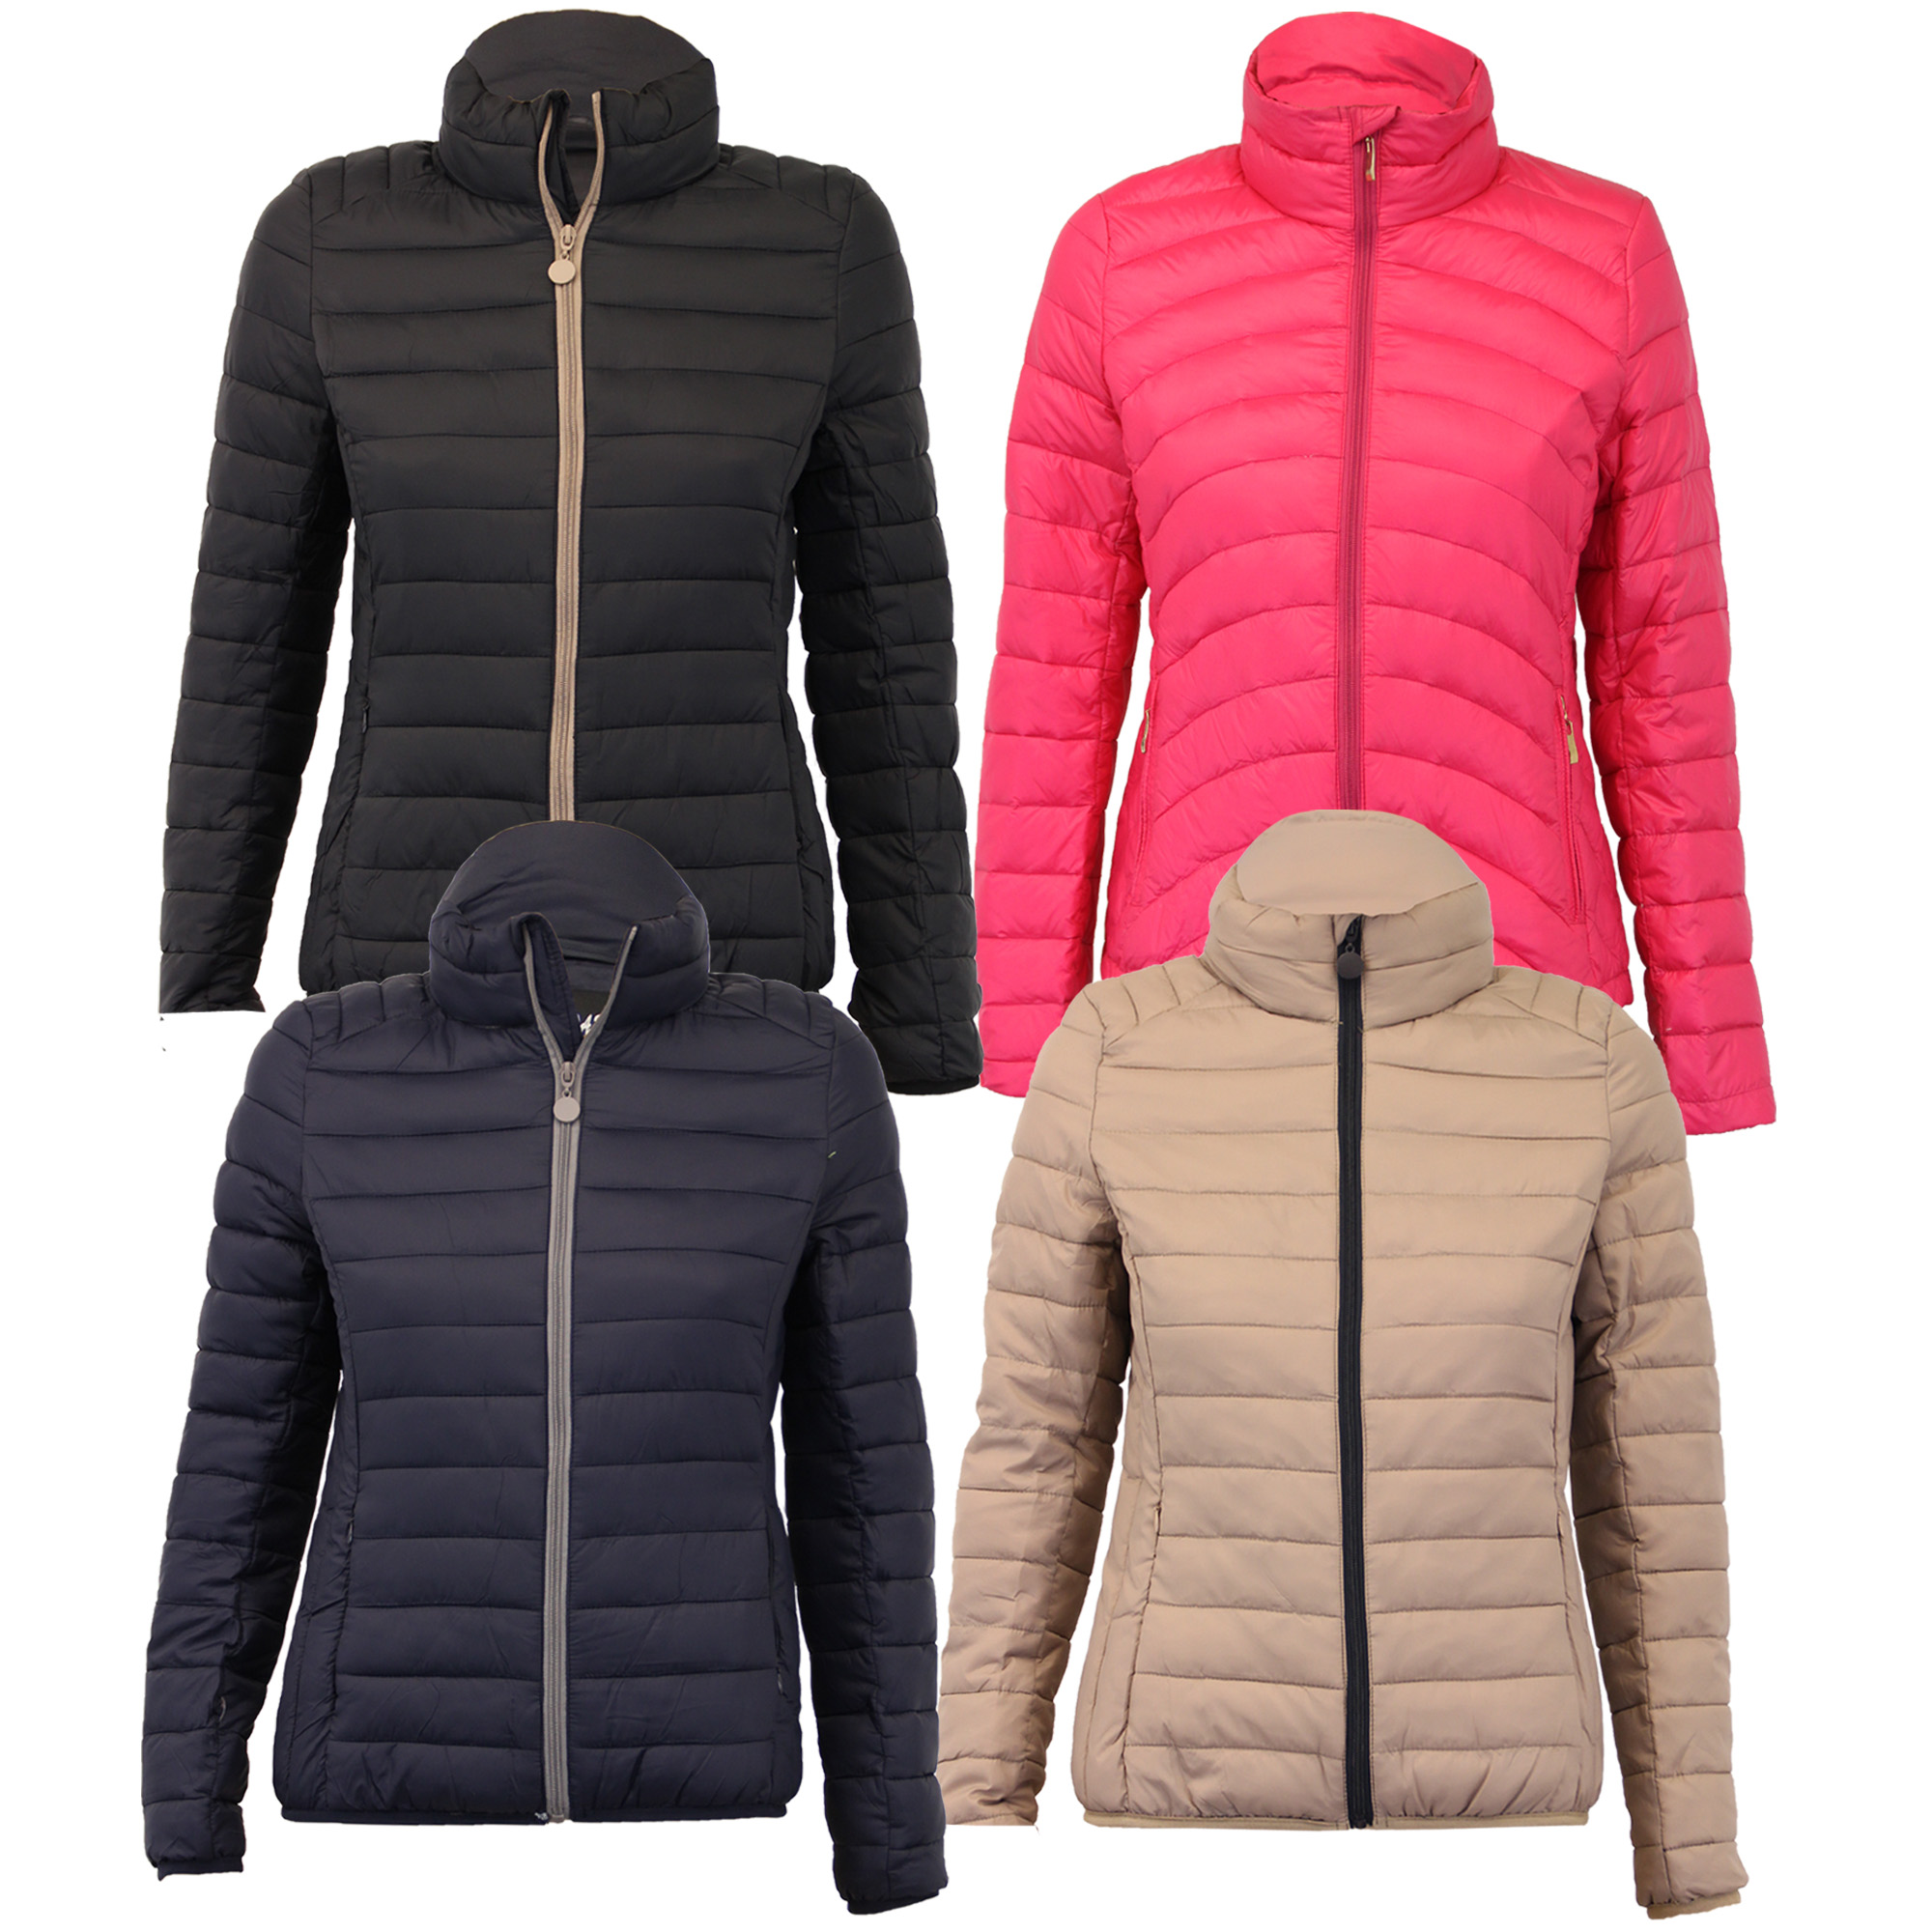 ToBeInStyle Women's Quilted Padded Jacket With Suede Piping Detail. by ToBeInStyle. $ - $ $ 29 $ 33 95 Prime. FREE Shipping on eligible orders. Some sizes/colors are Prime eligible. out of 5 stars